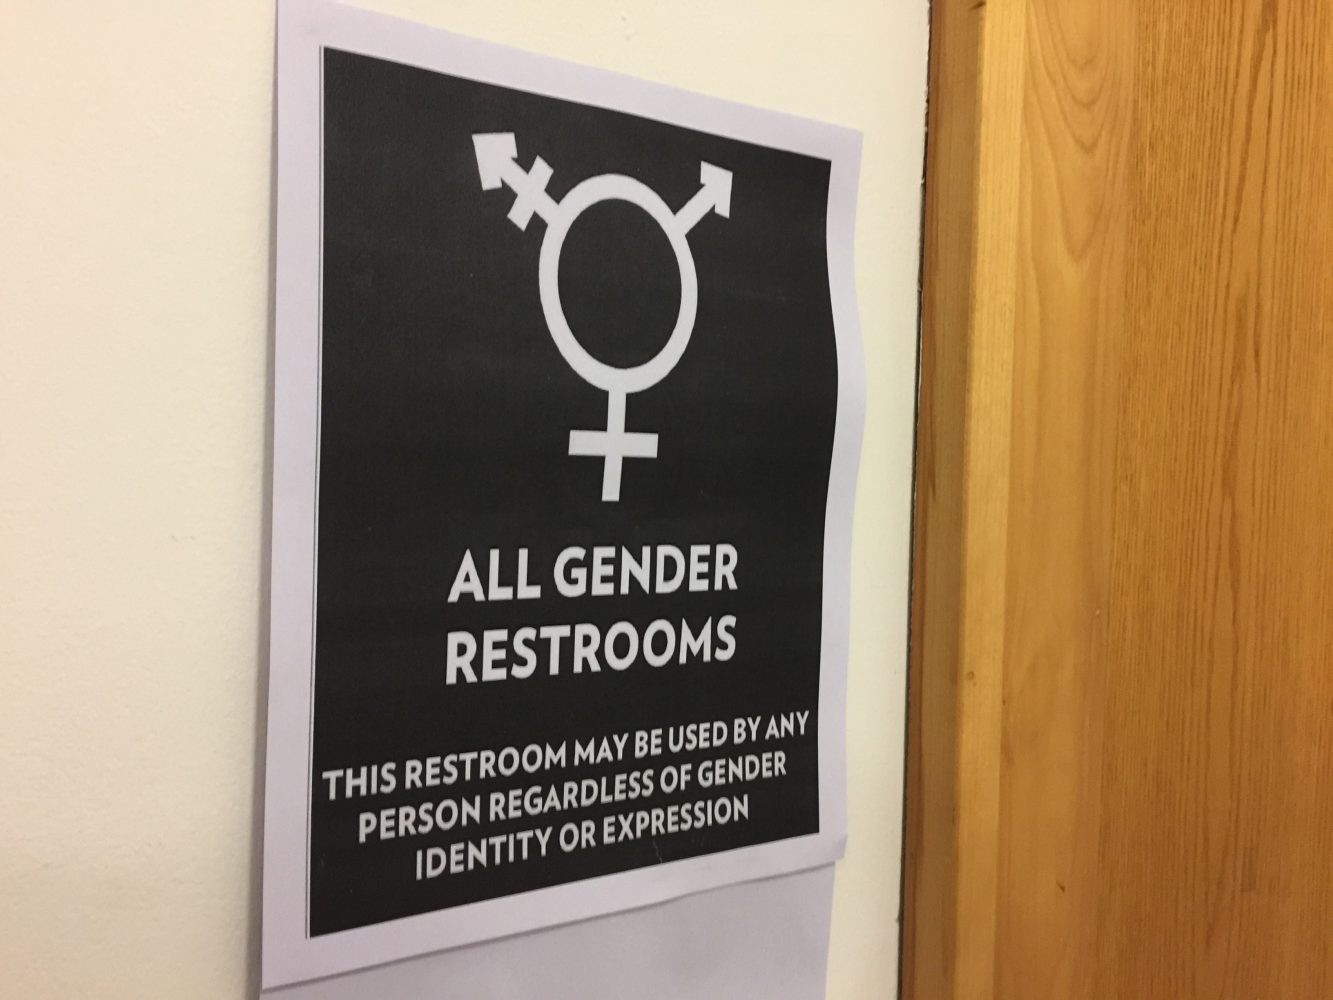 Gender-inclusive+restroom+signs+have+been+placed+over+gendered+signs+in+eight+buildings+on+Baker%27s+campus.